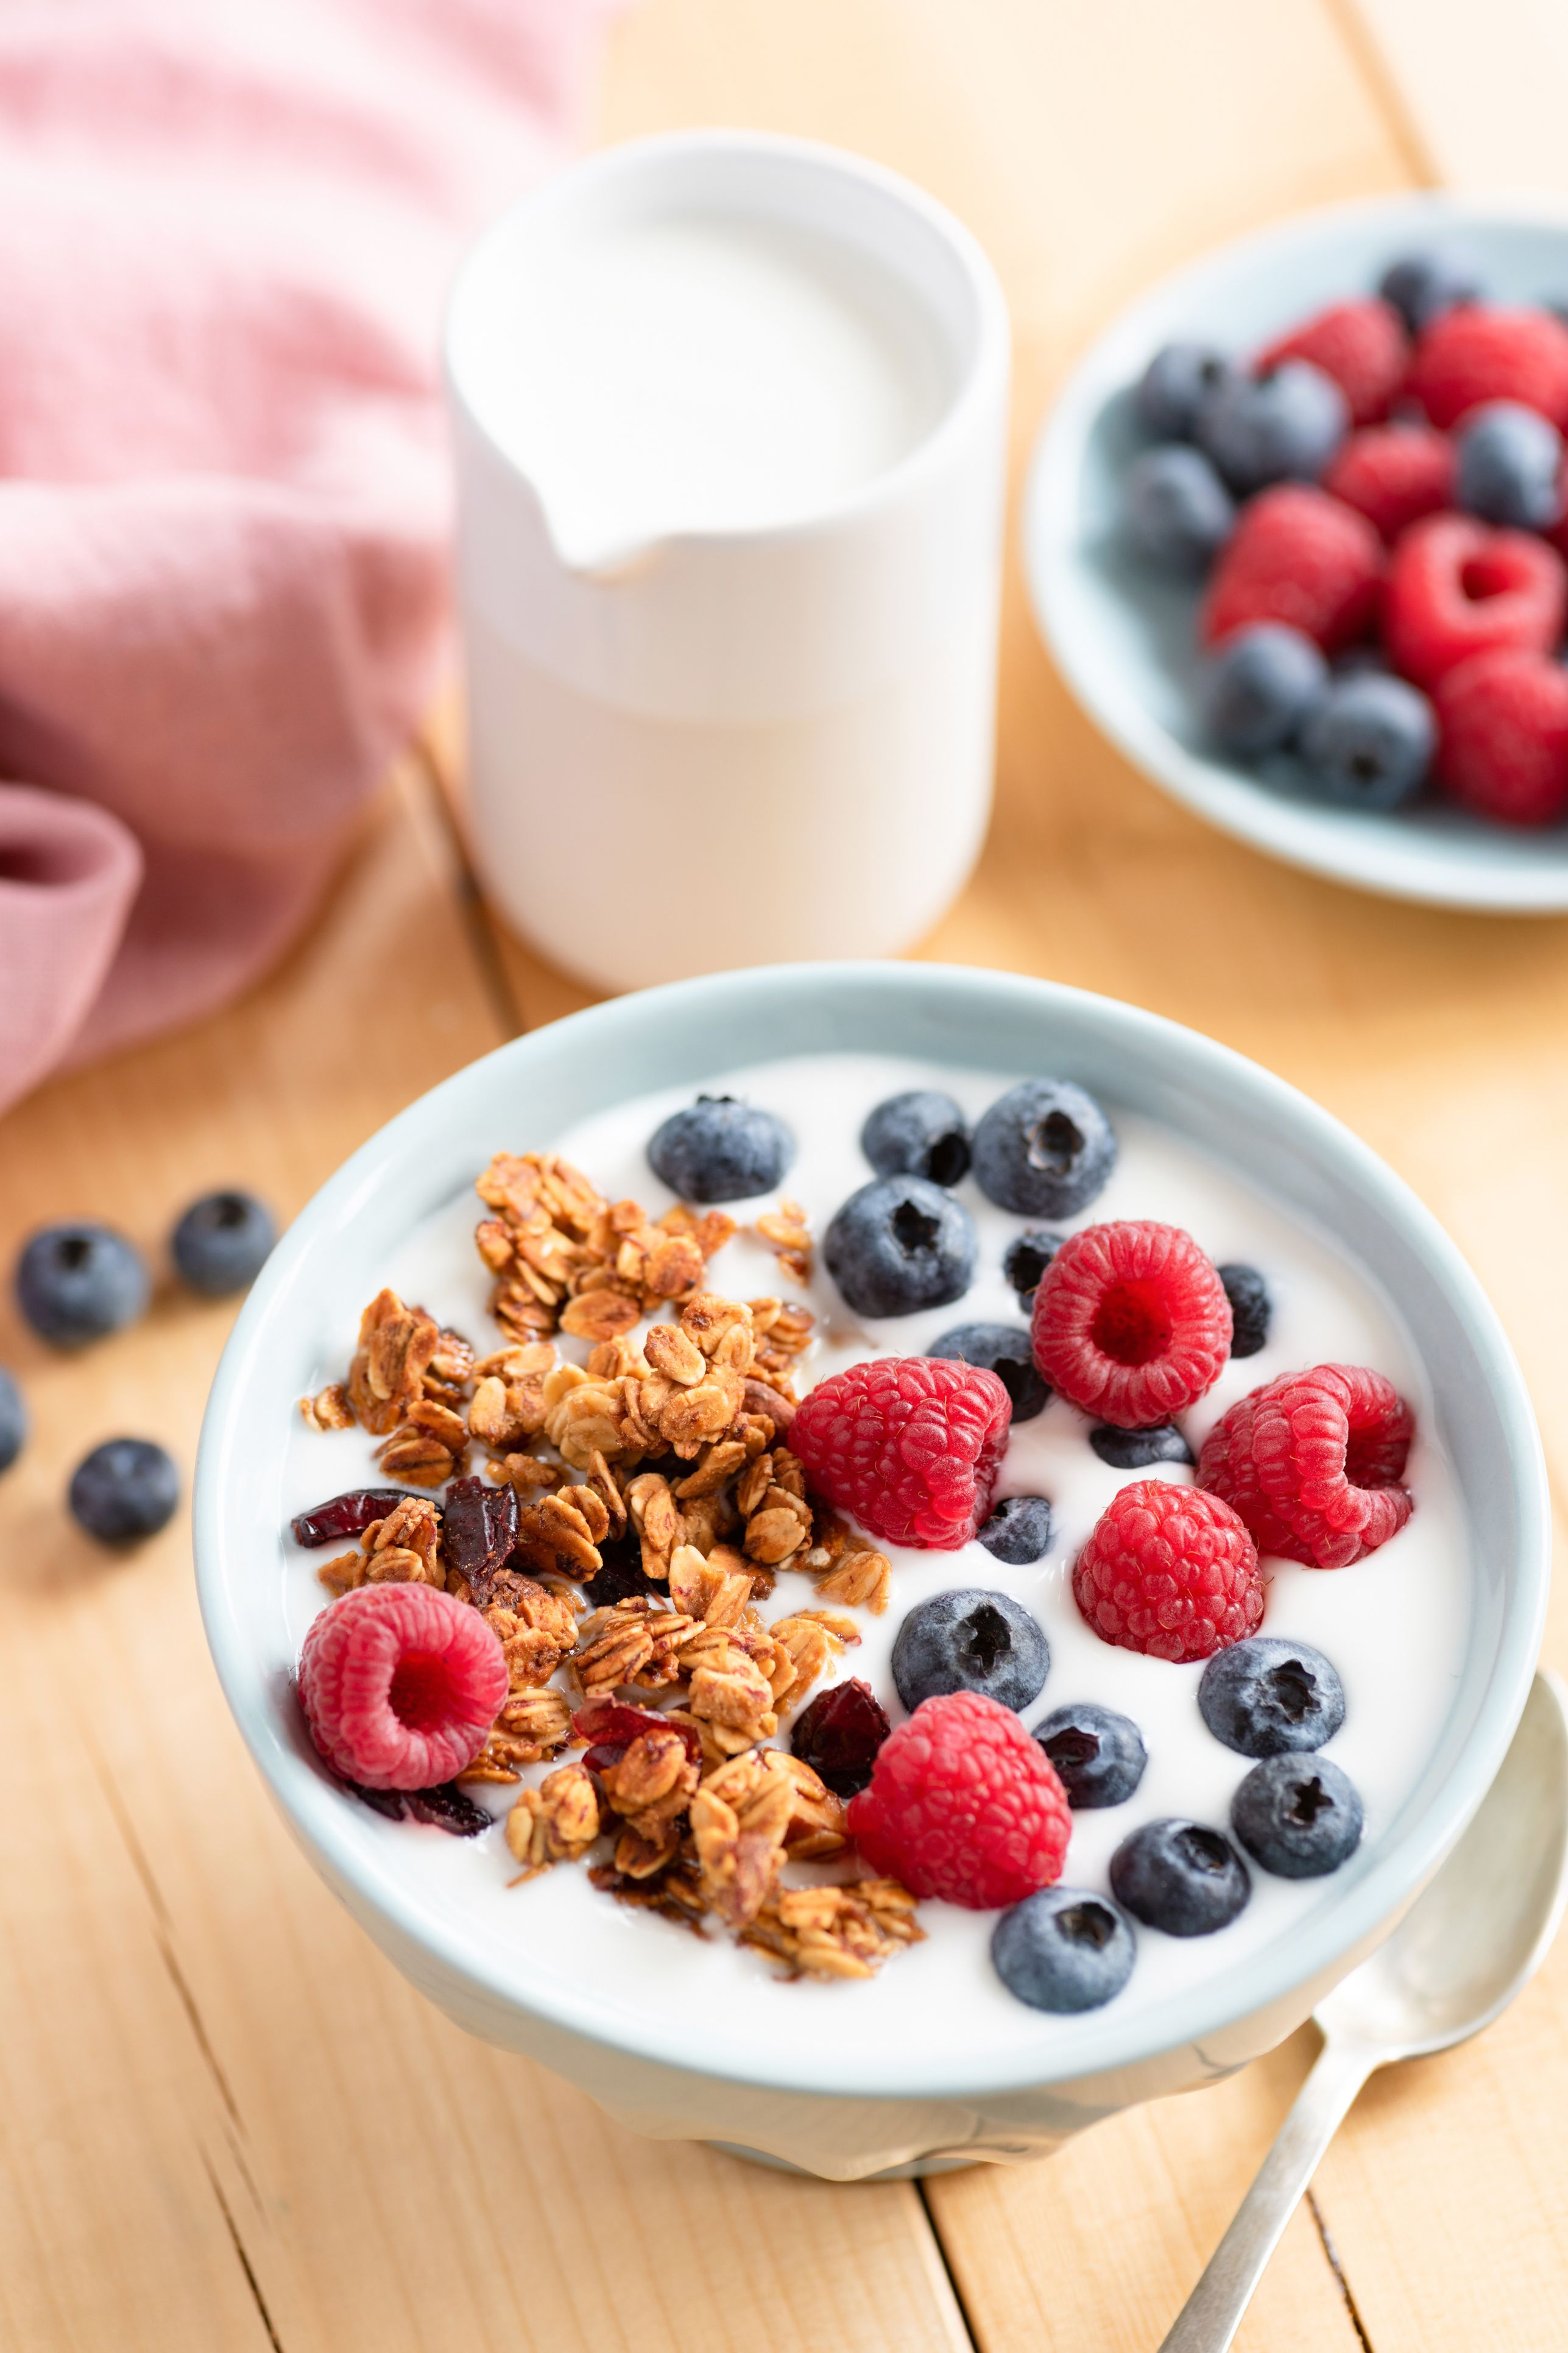 Stay-Skinny Secrets of Women Who Never Diet berries